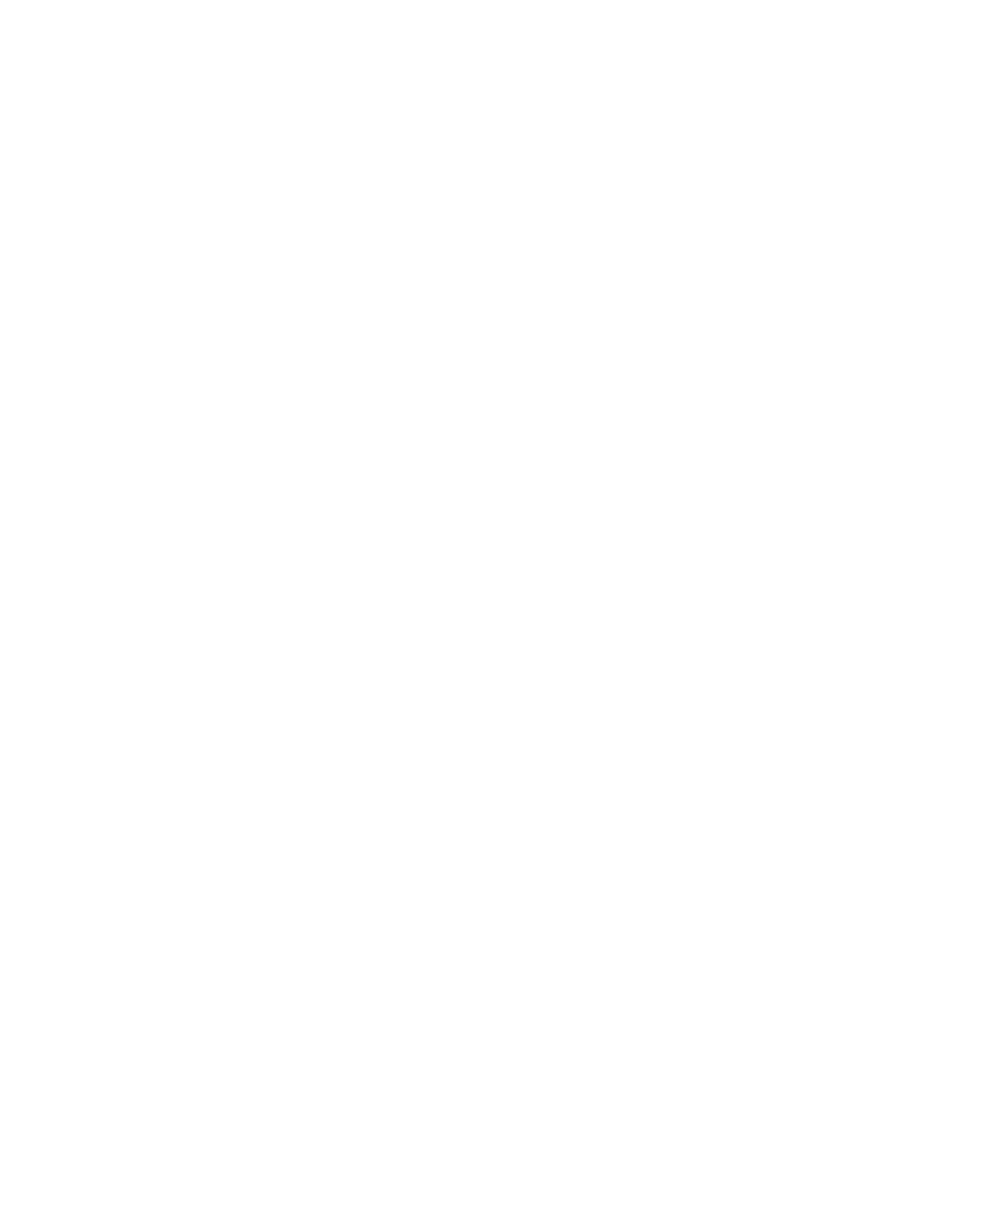 Lockbox Film